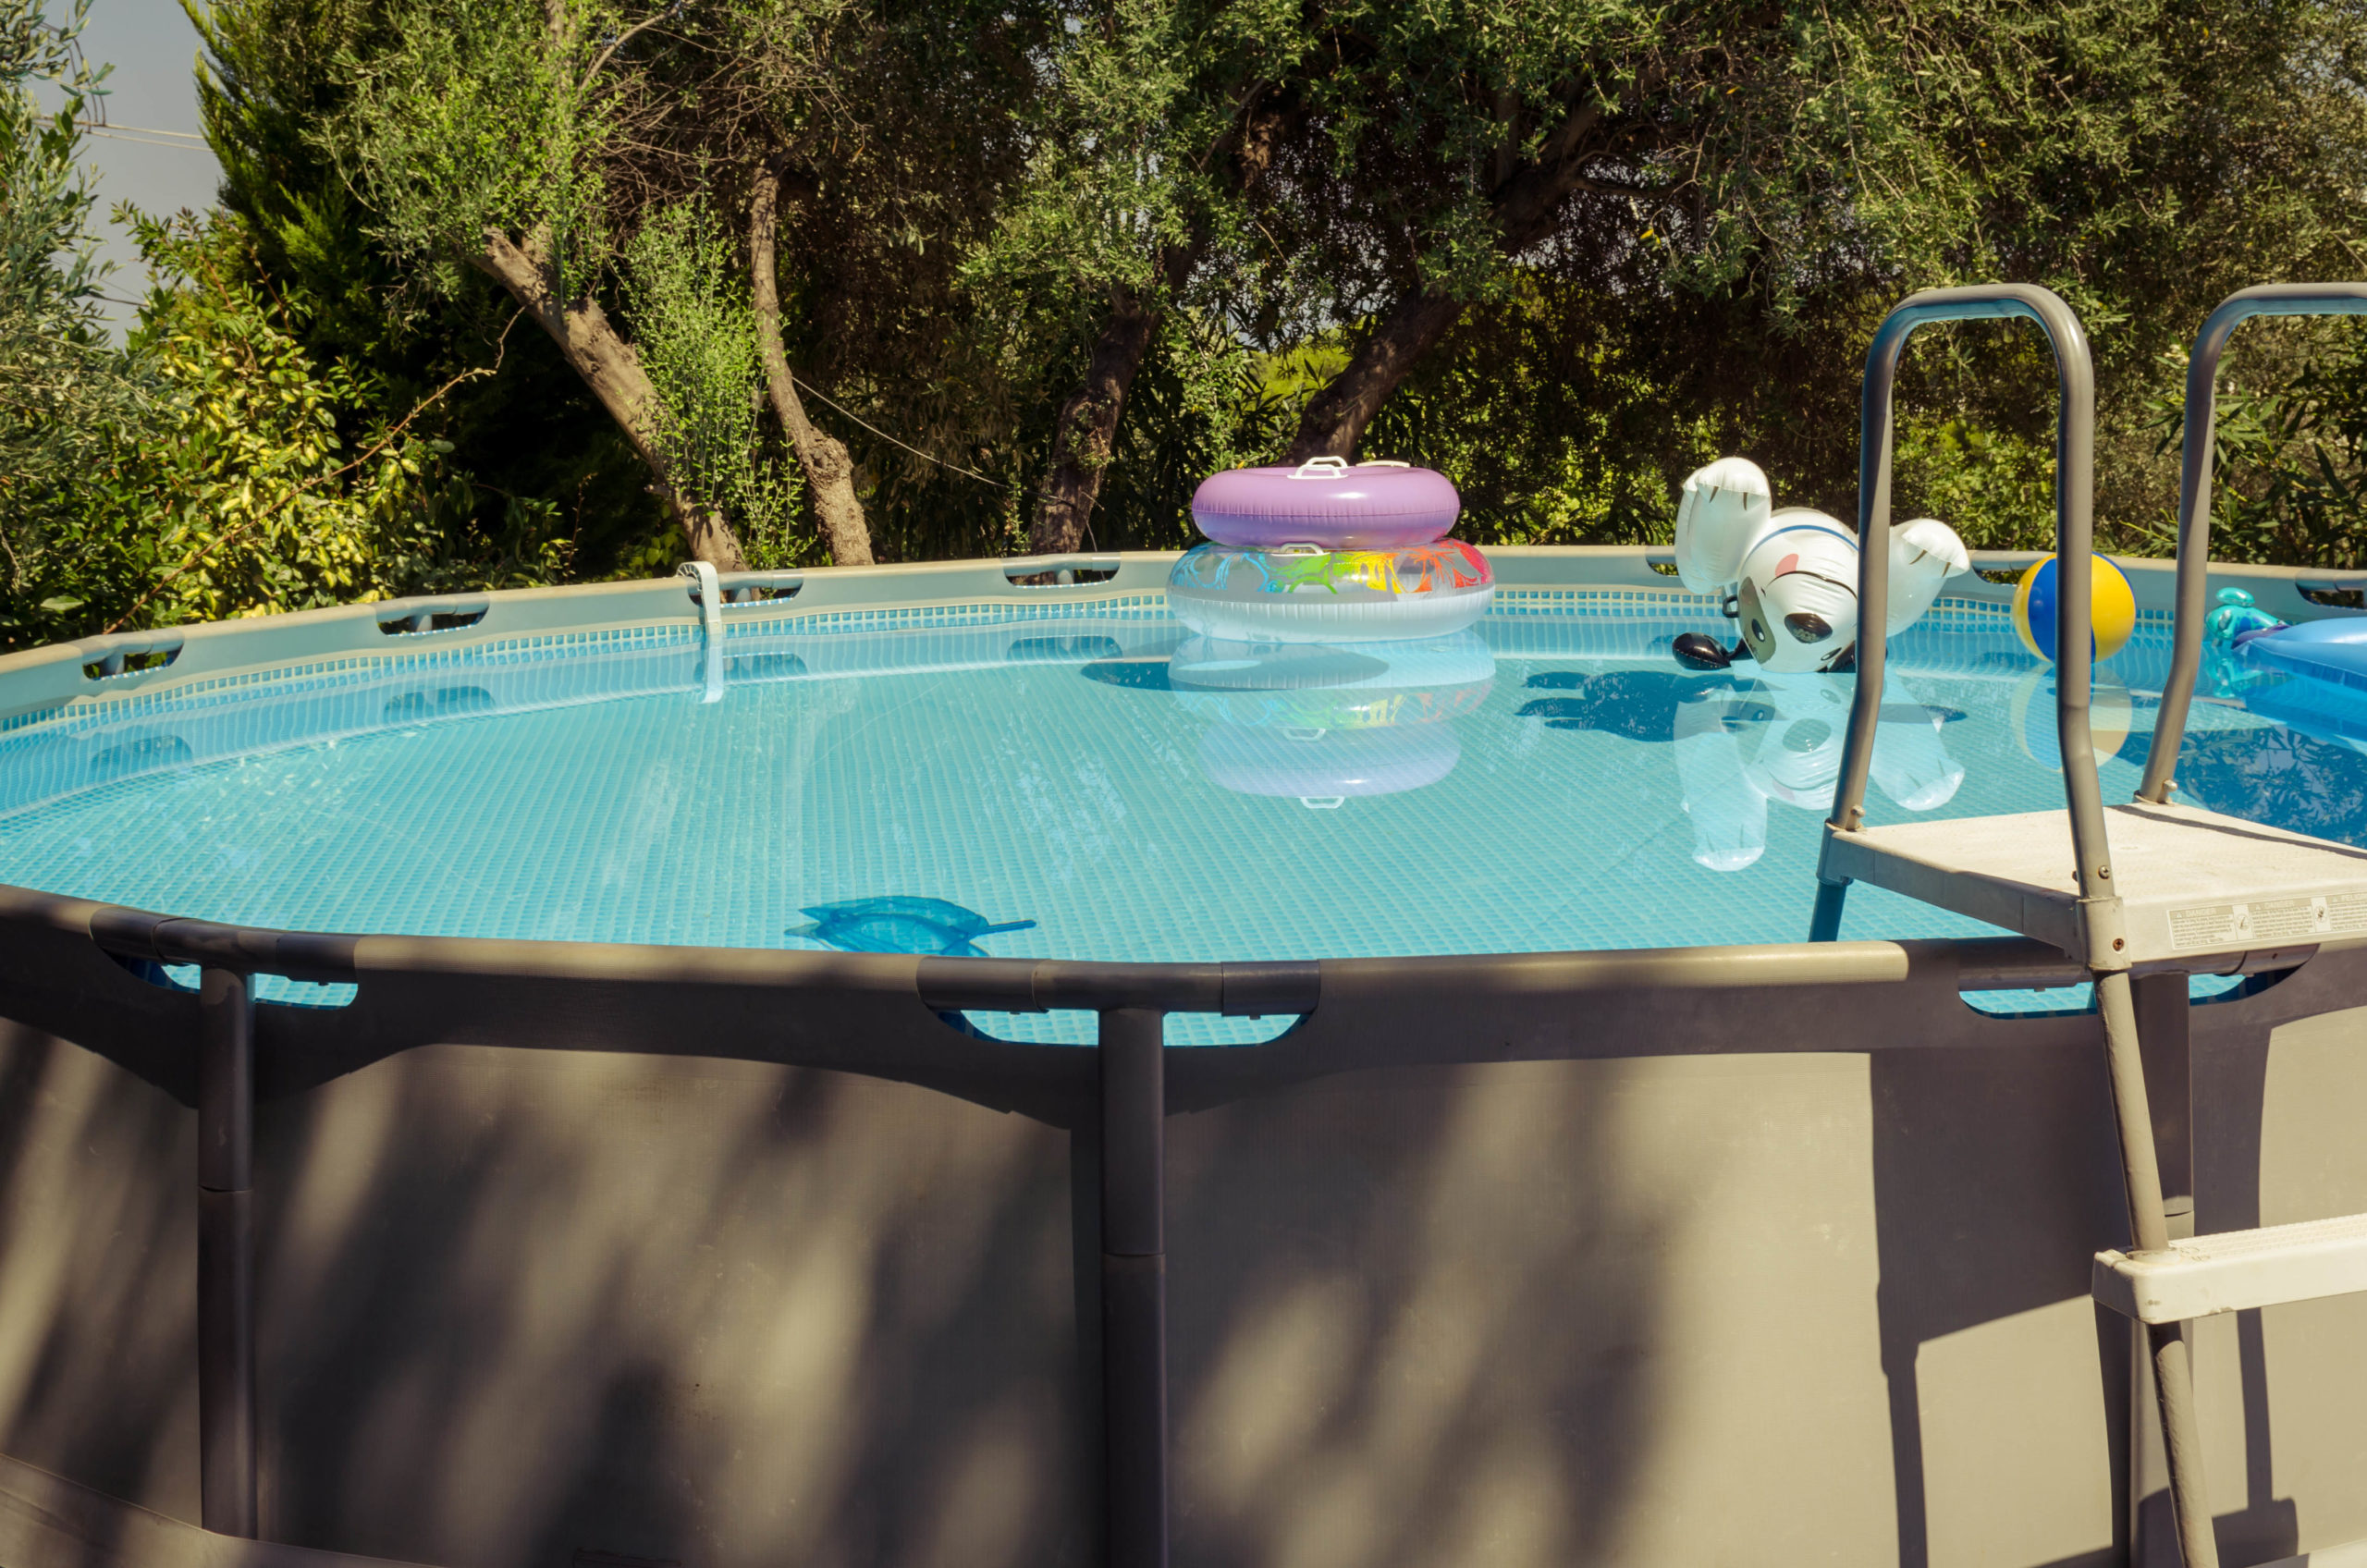 summer cleaning tips - image 1 - spruce up pool steps and siding